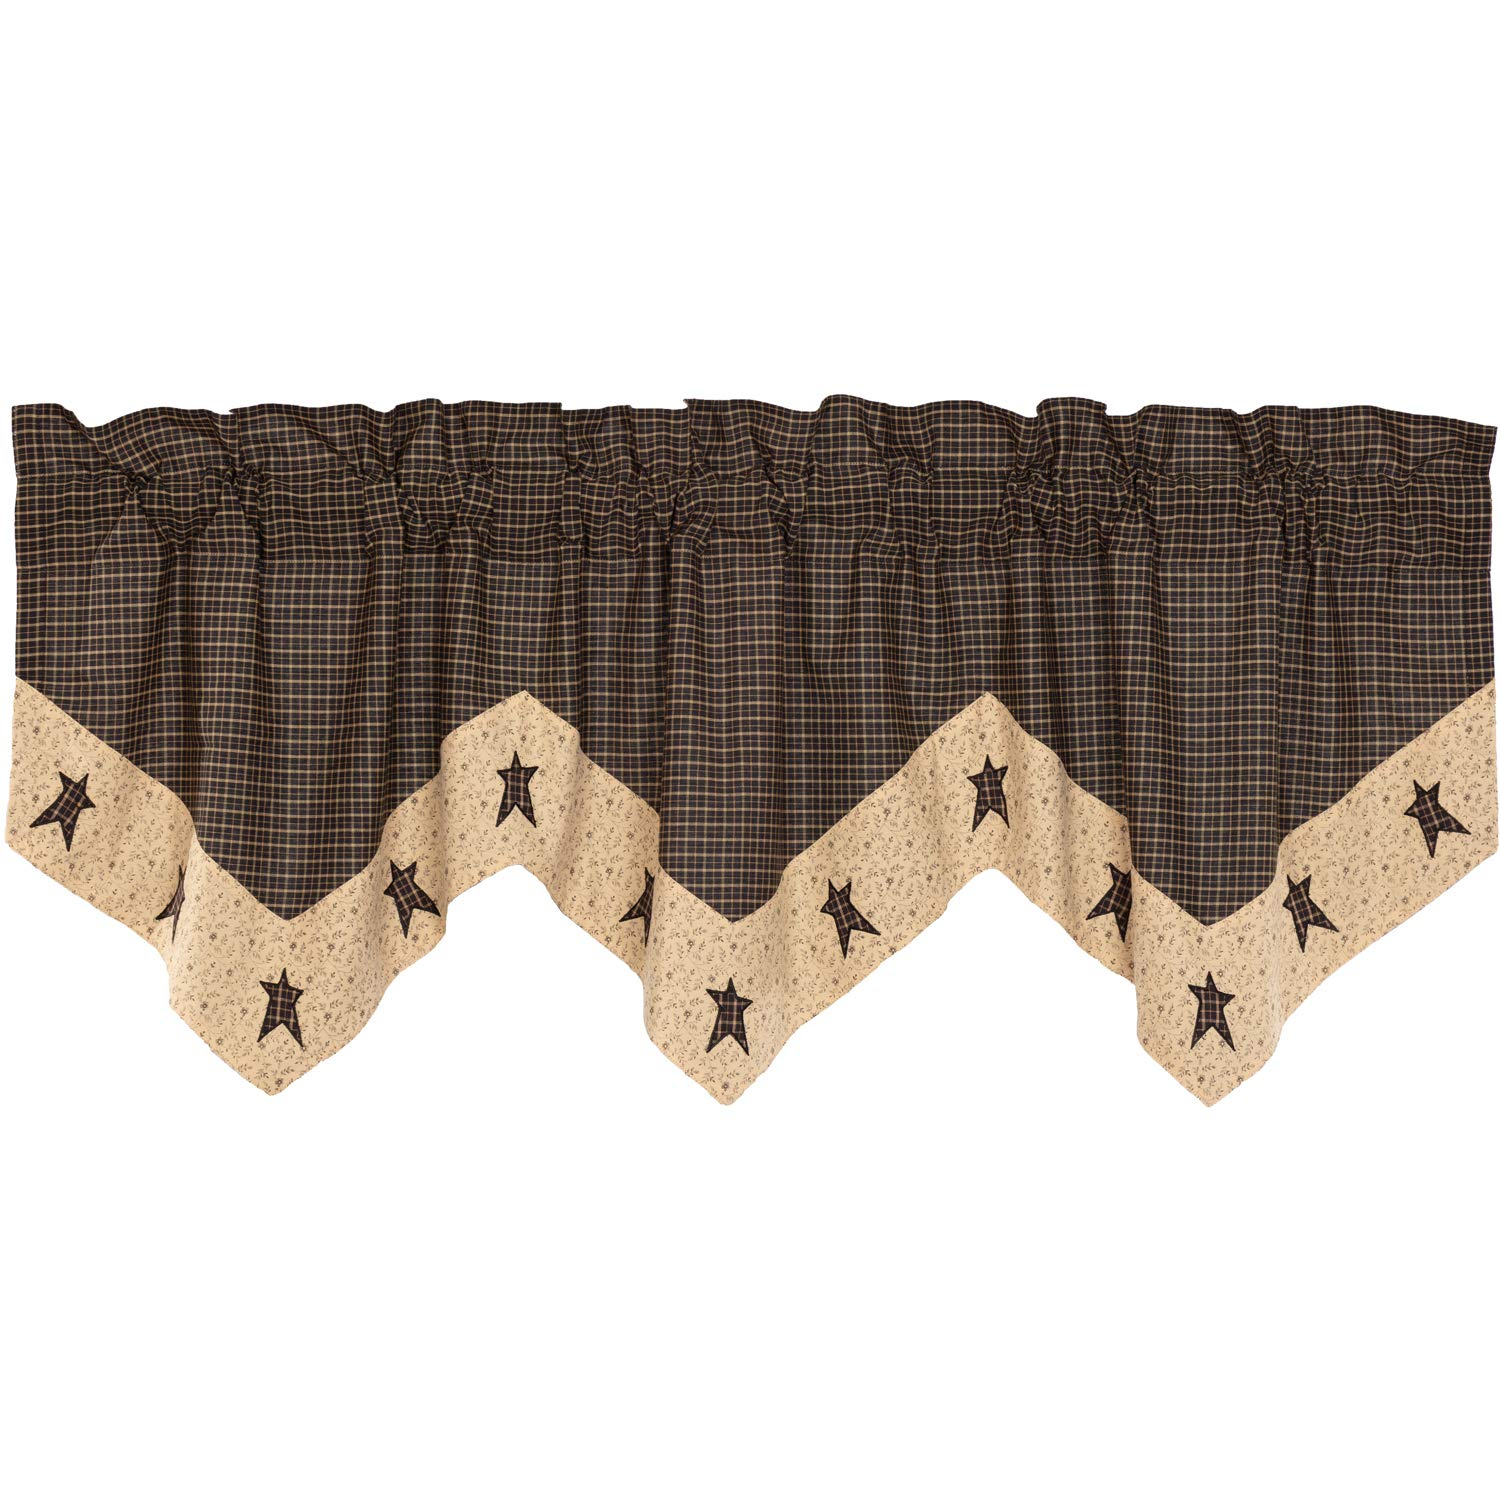 VHC Brands Primitive Kitchen Curtains Kettle Grove Star Rod Pocket Cotton Hanging Loops Appliqued 20x60 Valance Country Black